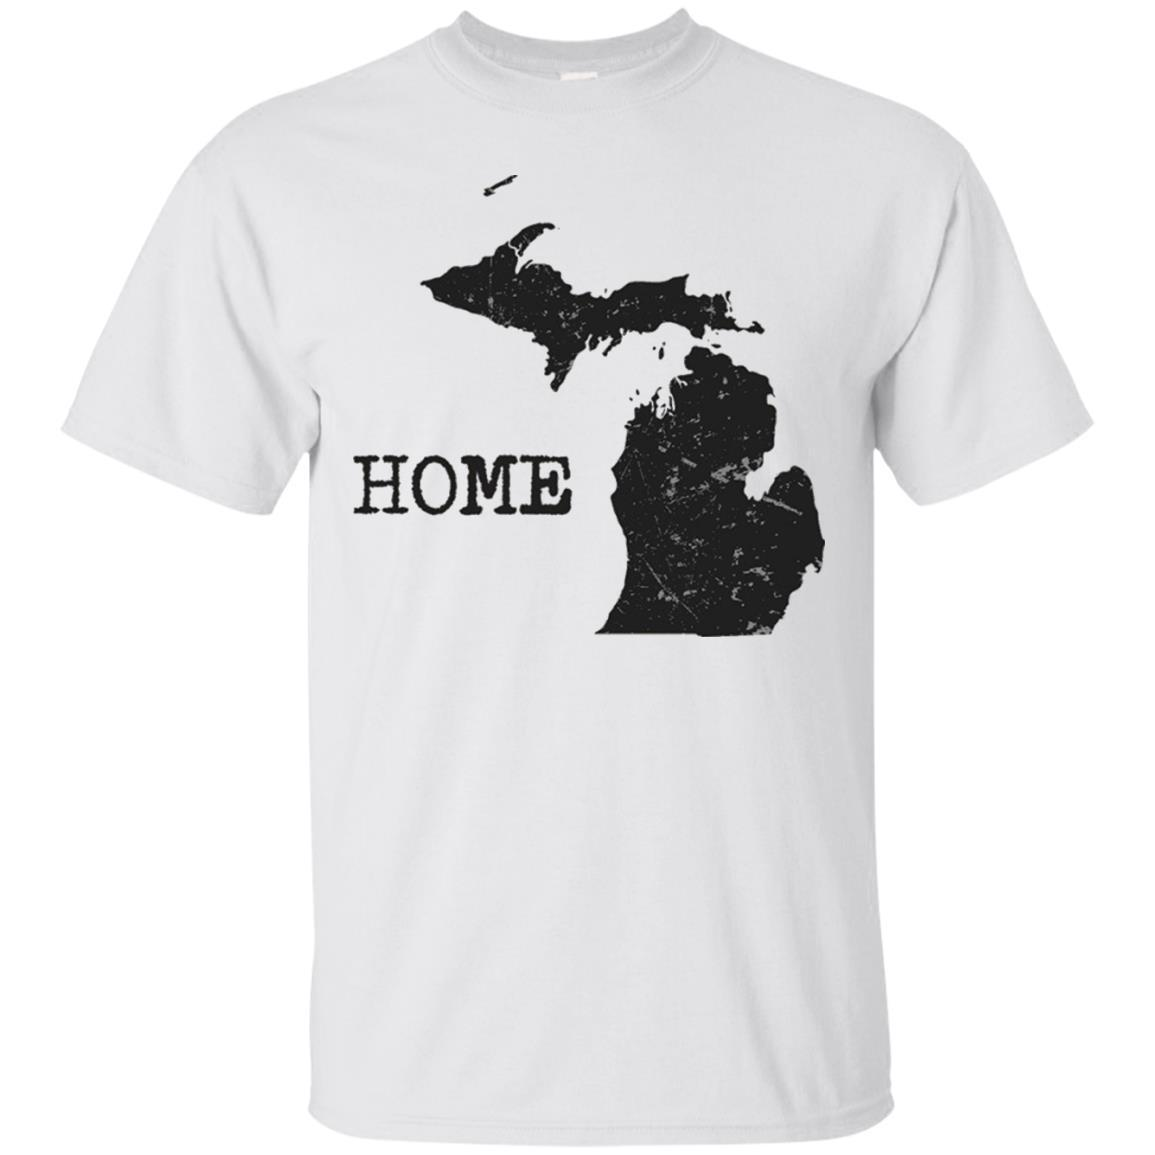 Home Tees I Love My Home State Michigan UP North T-Shirt